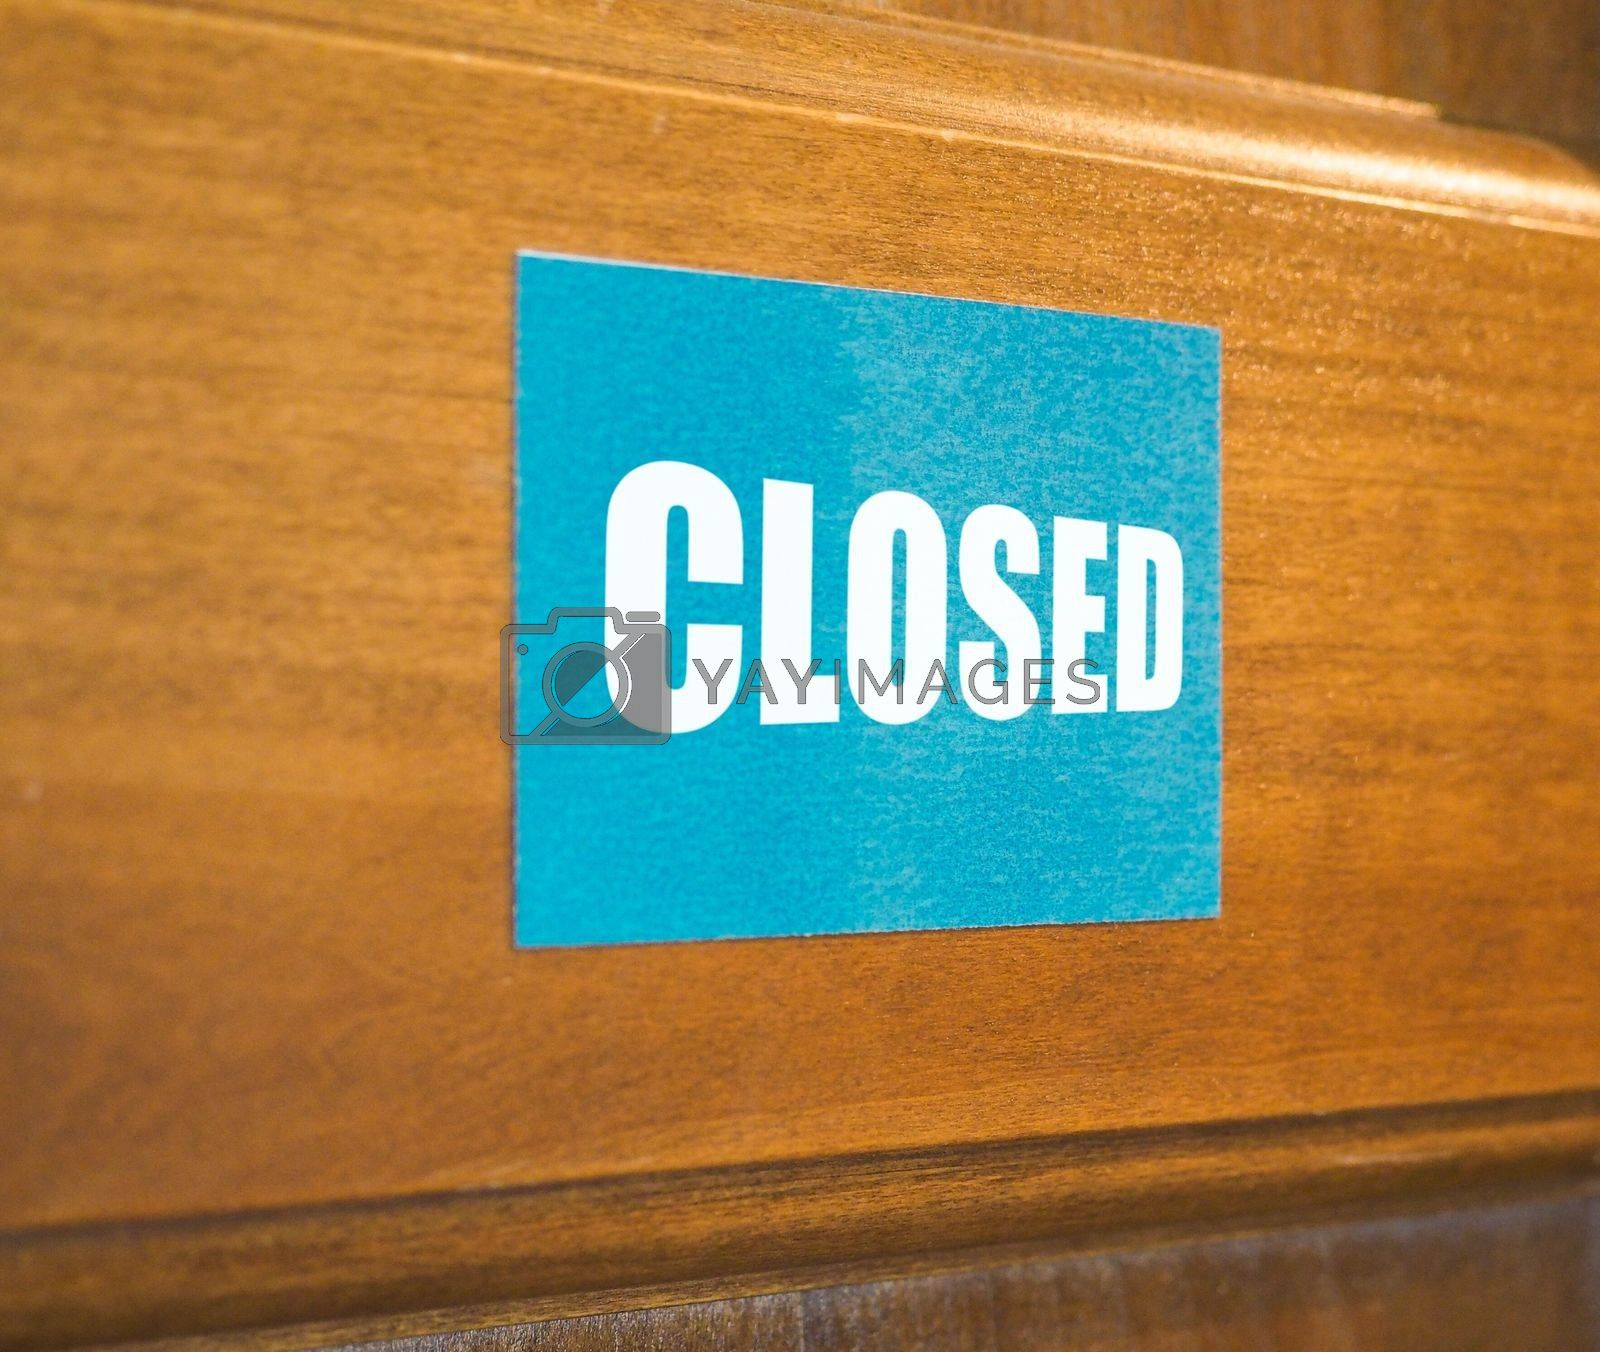 Closed sign on a wooden door, perspective view